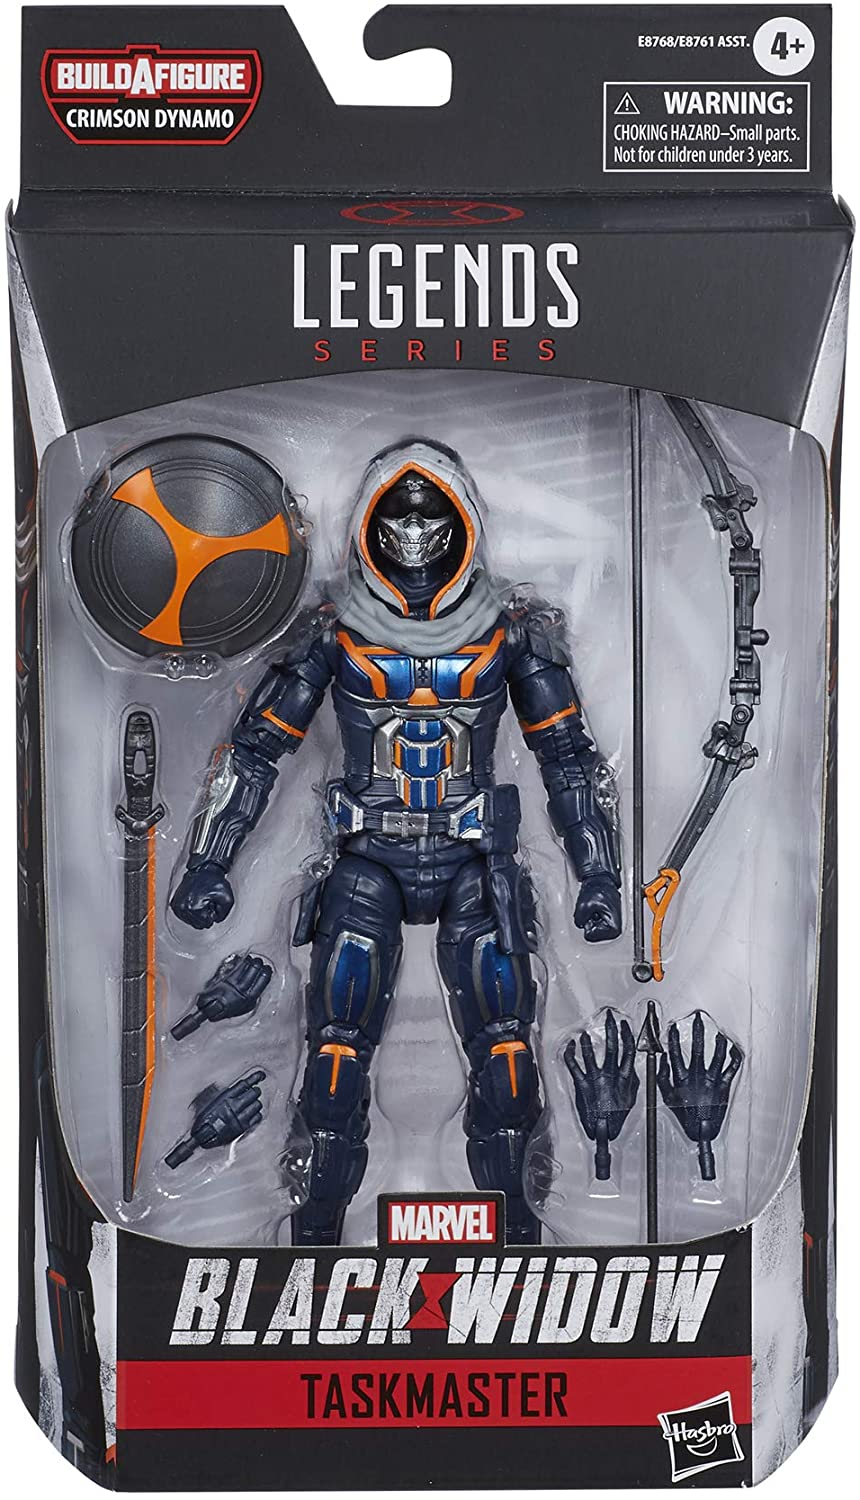 Marvel Hasbro Black Widow Legends Series 6-inch Collectible Taskmaster Action Figure Toy,